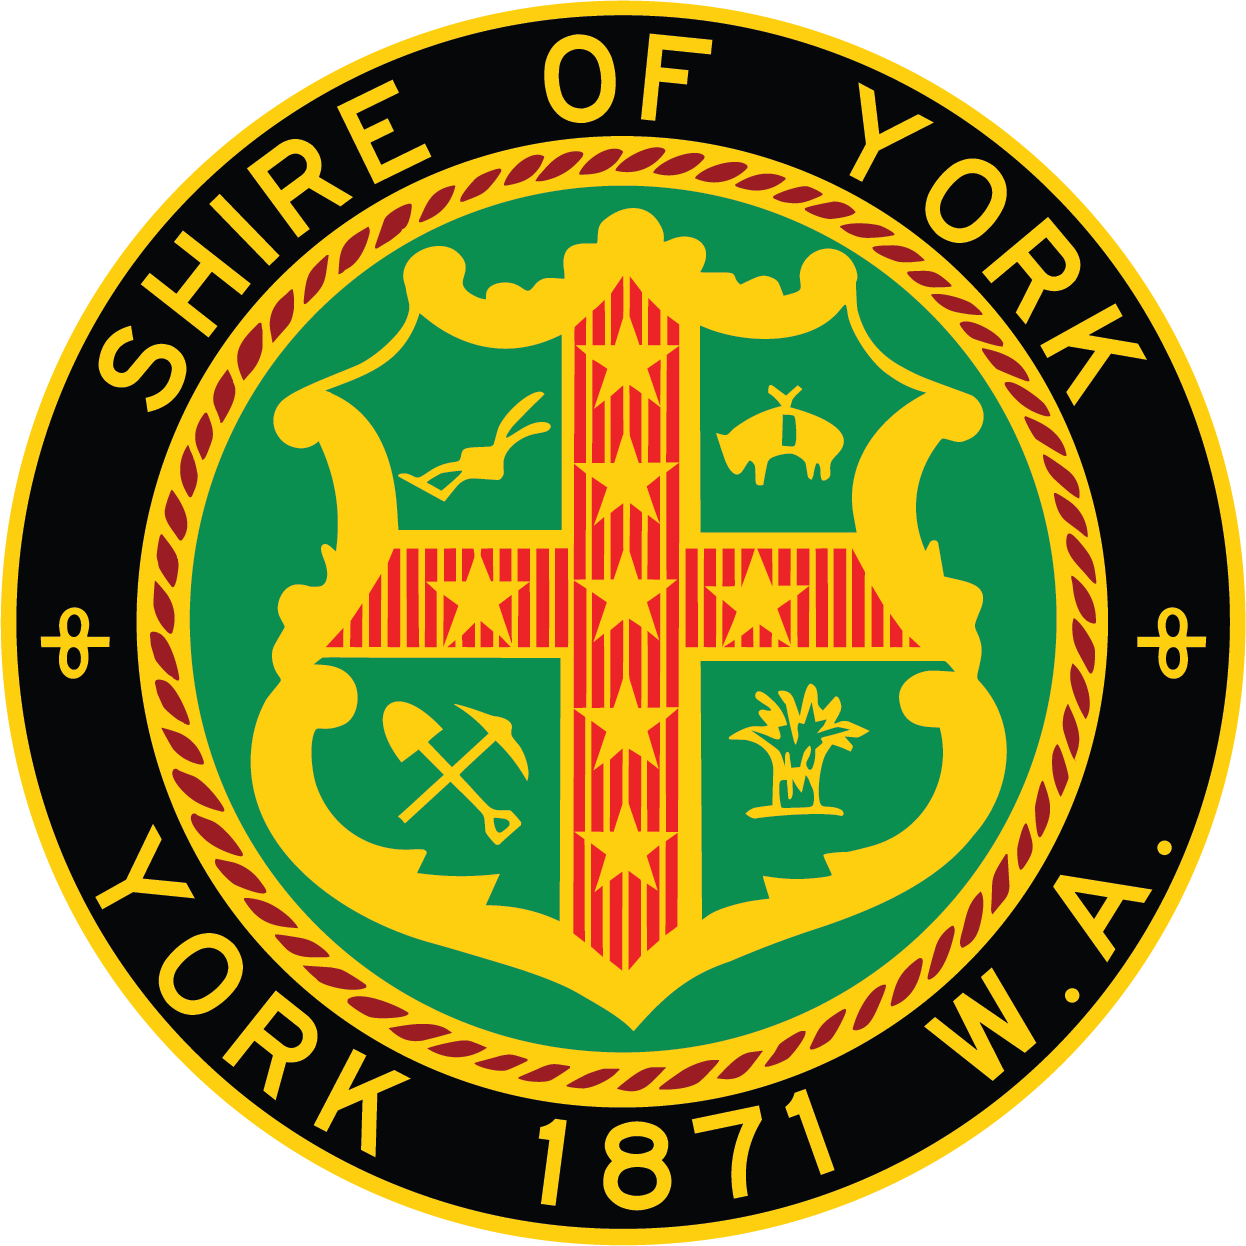 Shire of York – Events & Public Gatherings